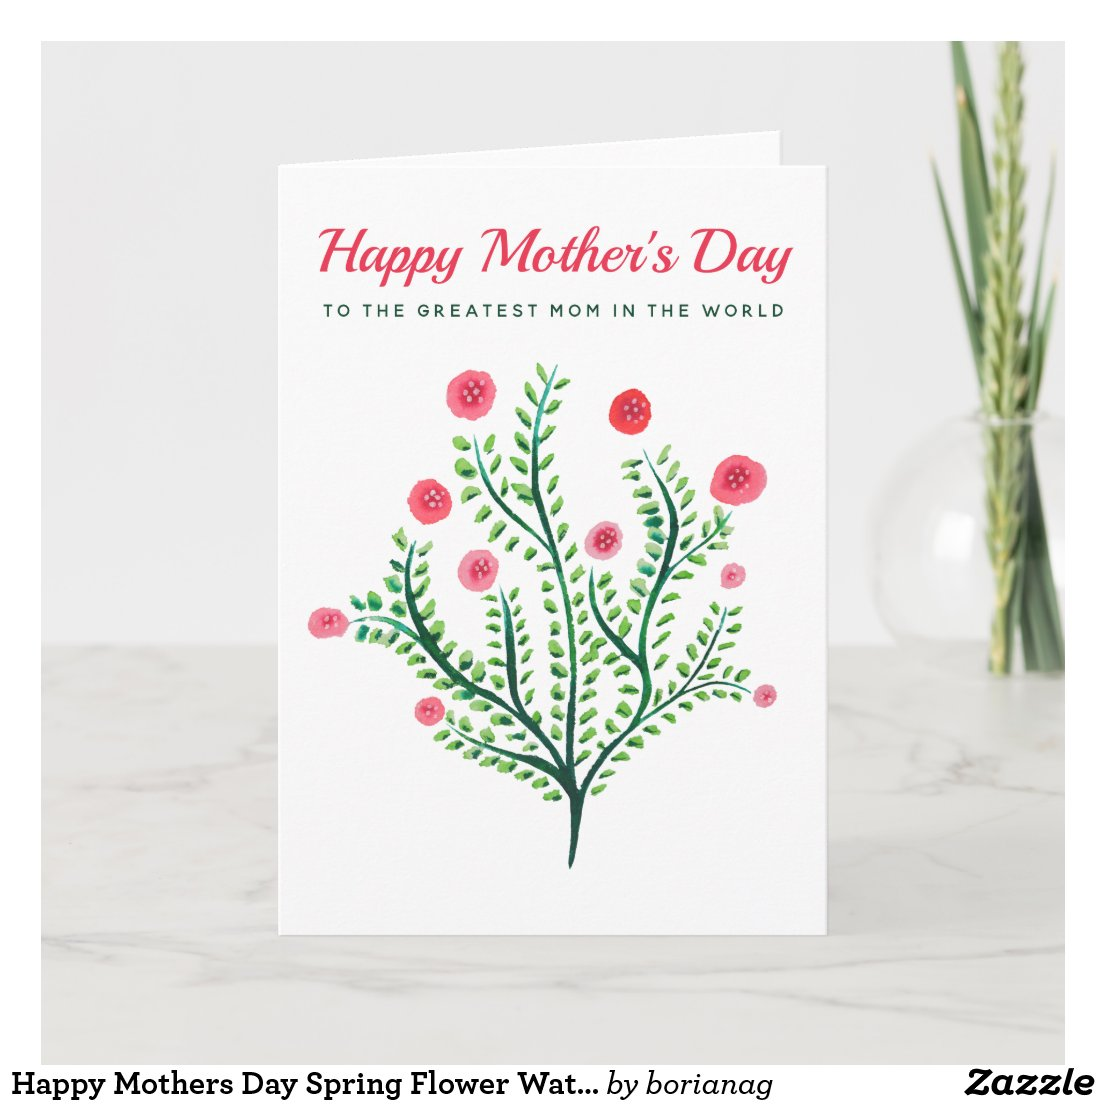 Happy Mothers Day Spring Flower Watercolor Card